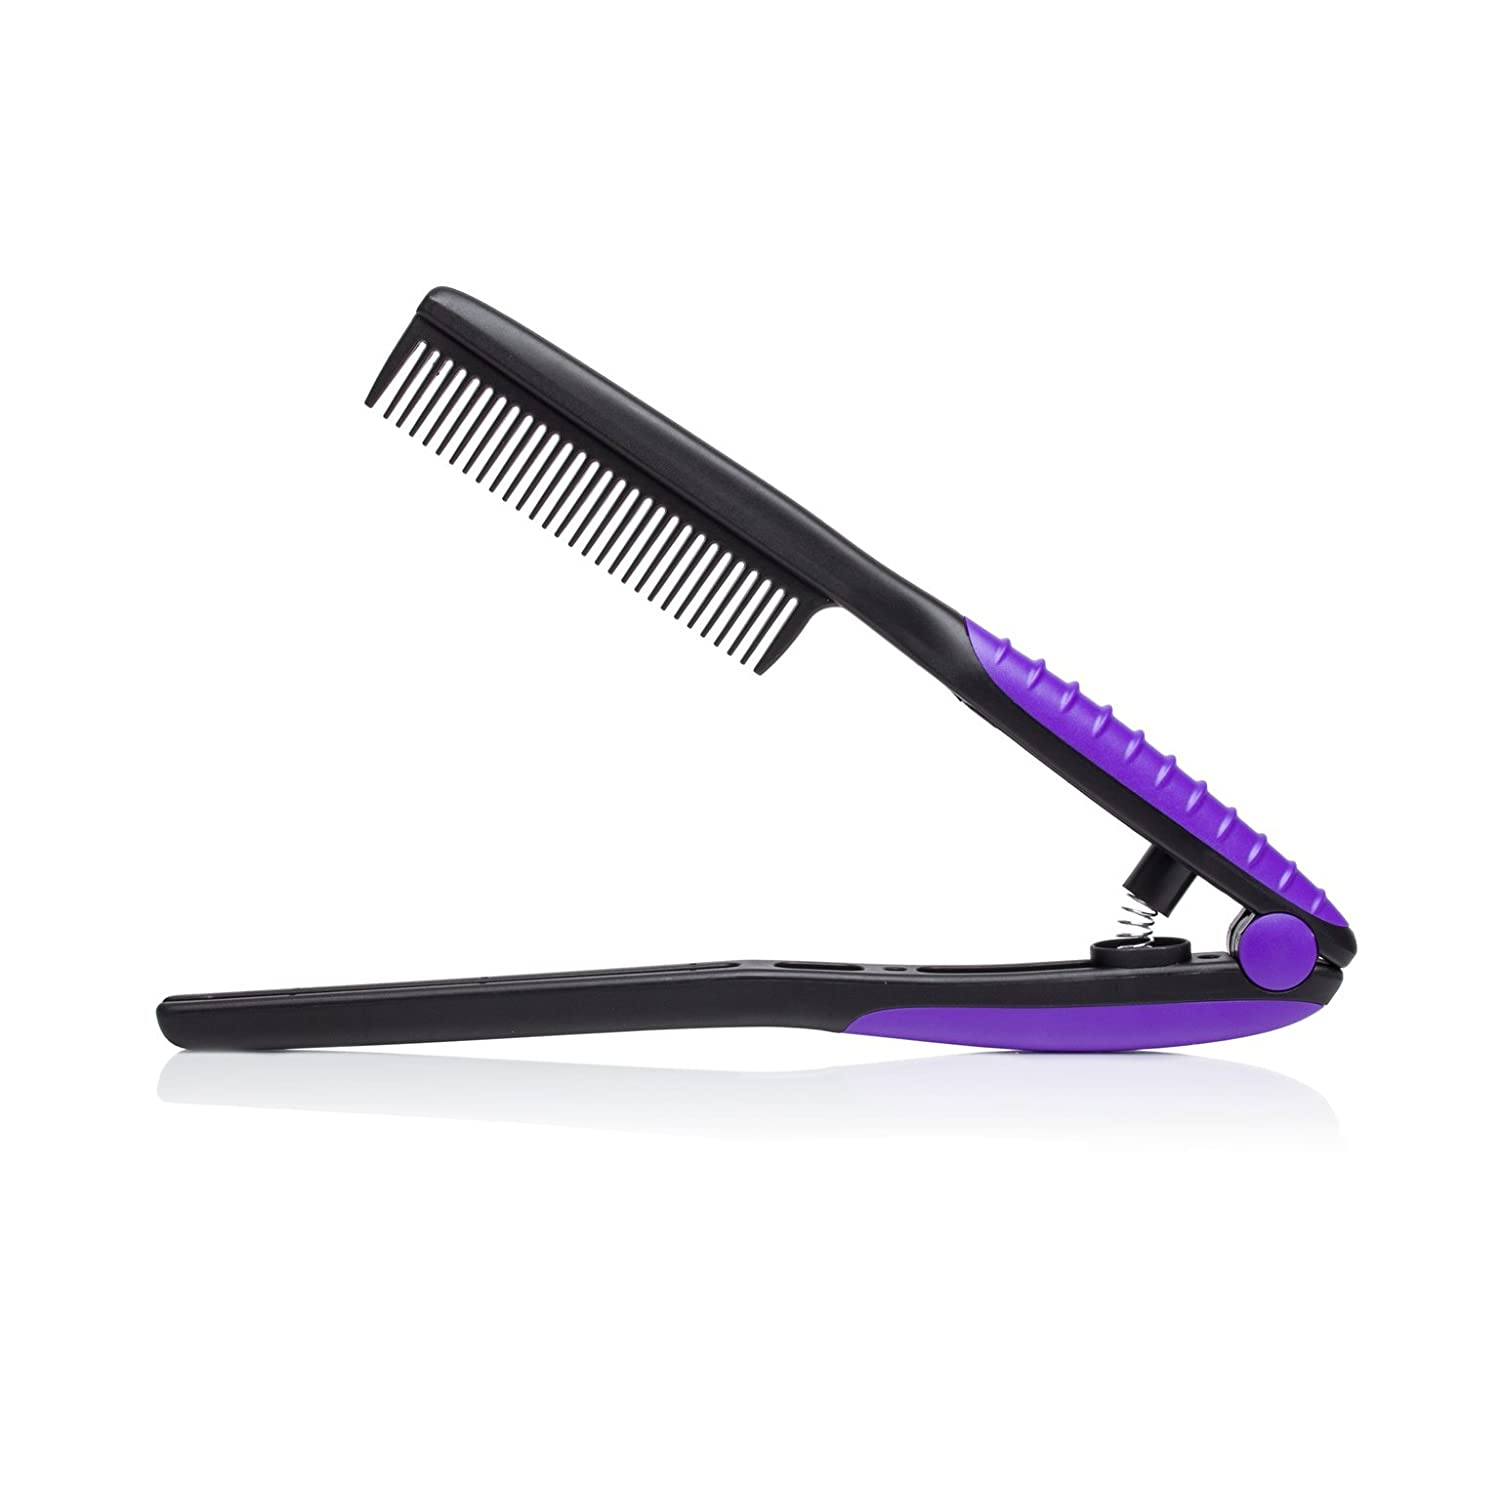 Brilliance New York - EZ Comb, Supports Precision Styling, Black and Purple